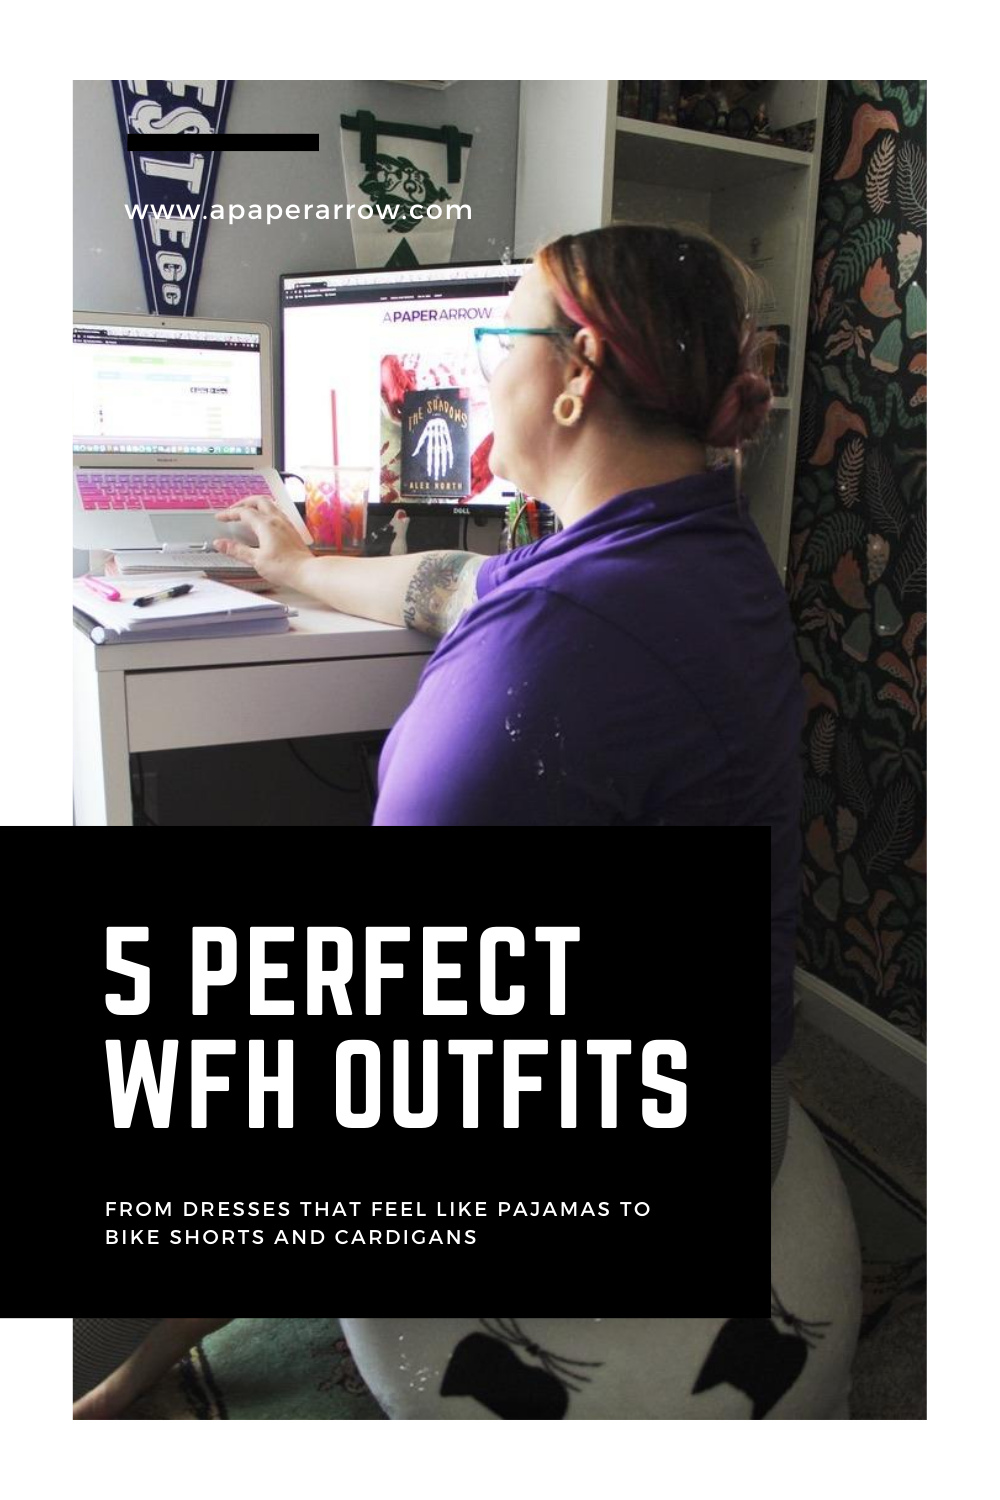 5 perfect wfh outfits, work-from-home, wfh style, wfh fashion, plus-size style, fat fashion, inclusive clothing, quarantine wardrobe